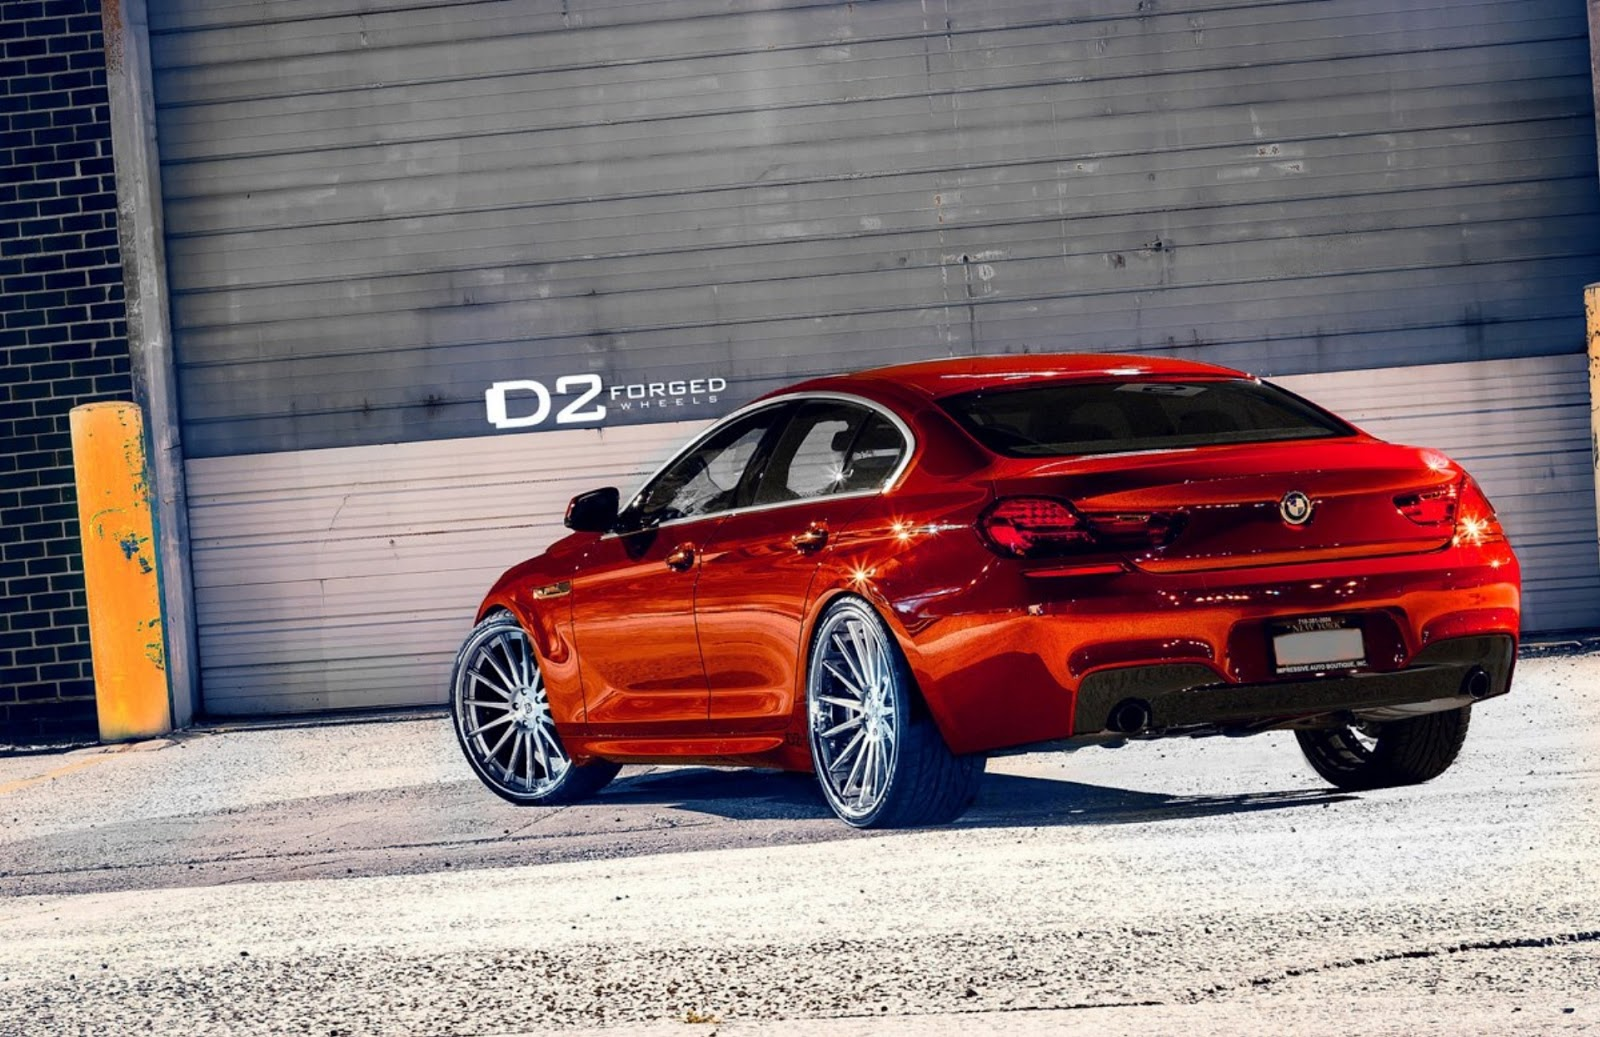 all tuning cars nz 2013 d2forged bmw 650i gran coupe cv15. Black Bedroom Furniture Sets. Home Design Ideas